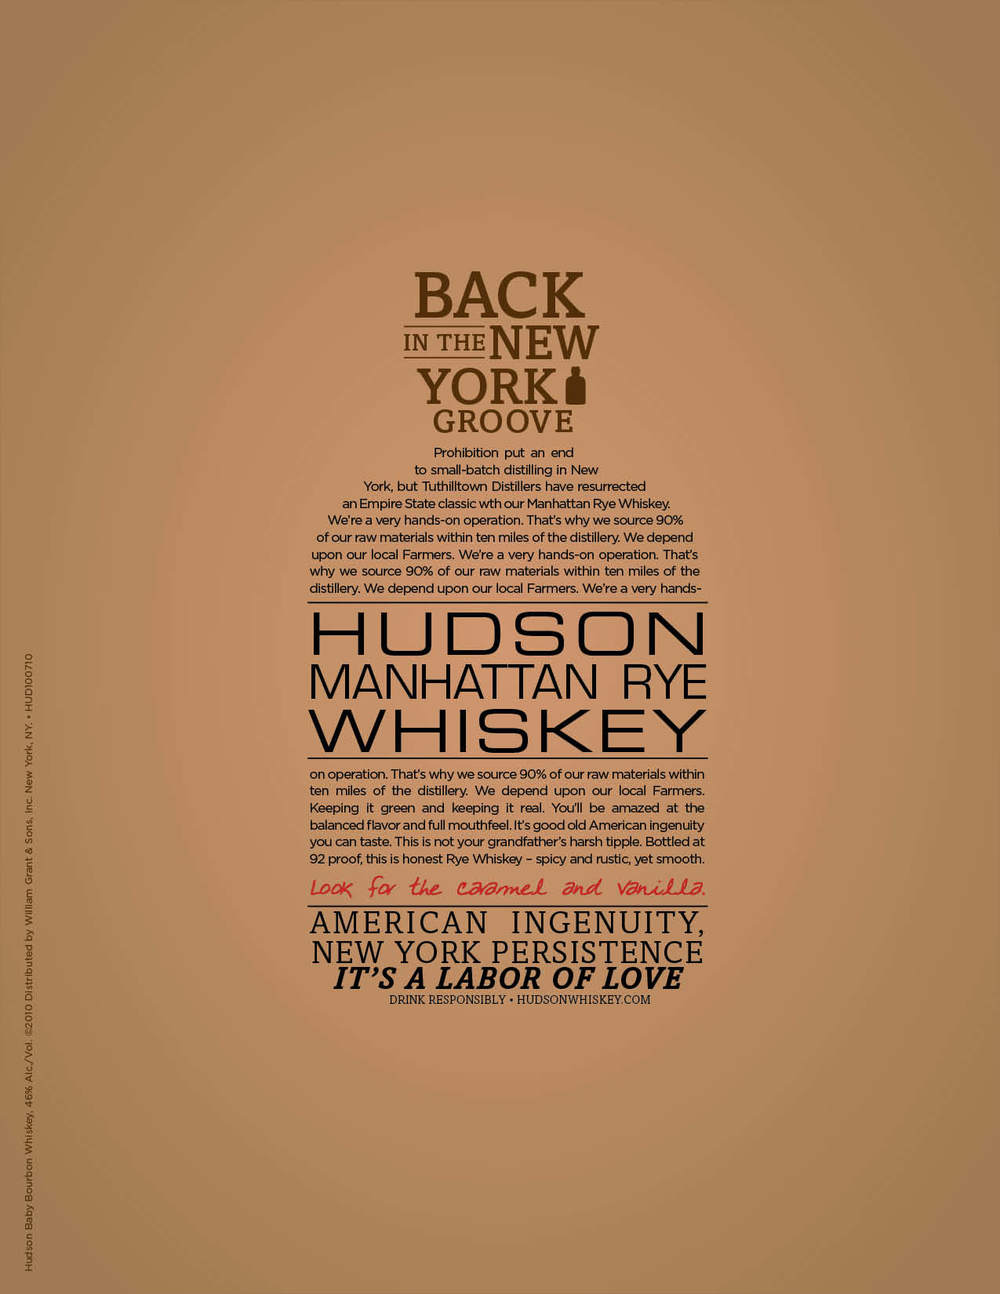 hudson-bottleicon-ads2.jpg